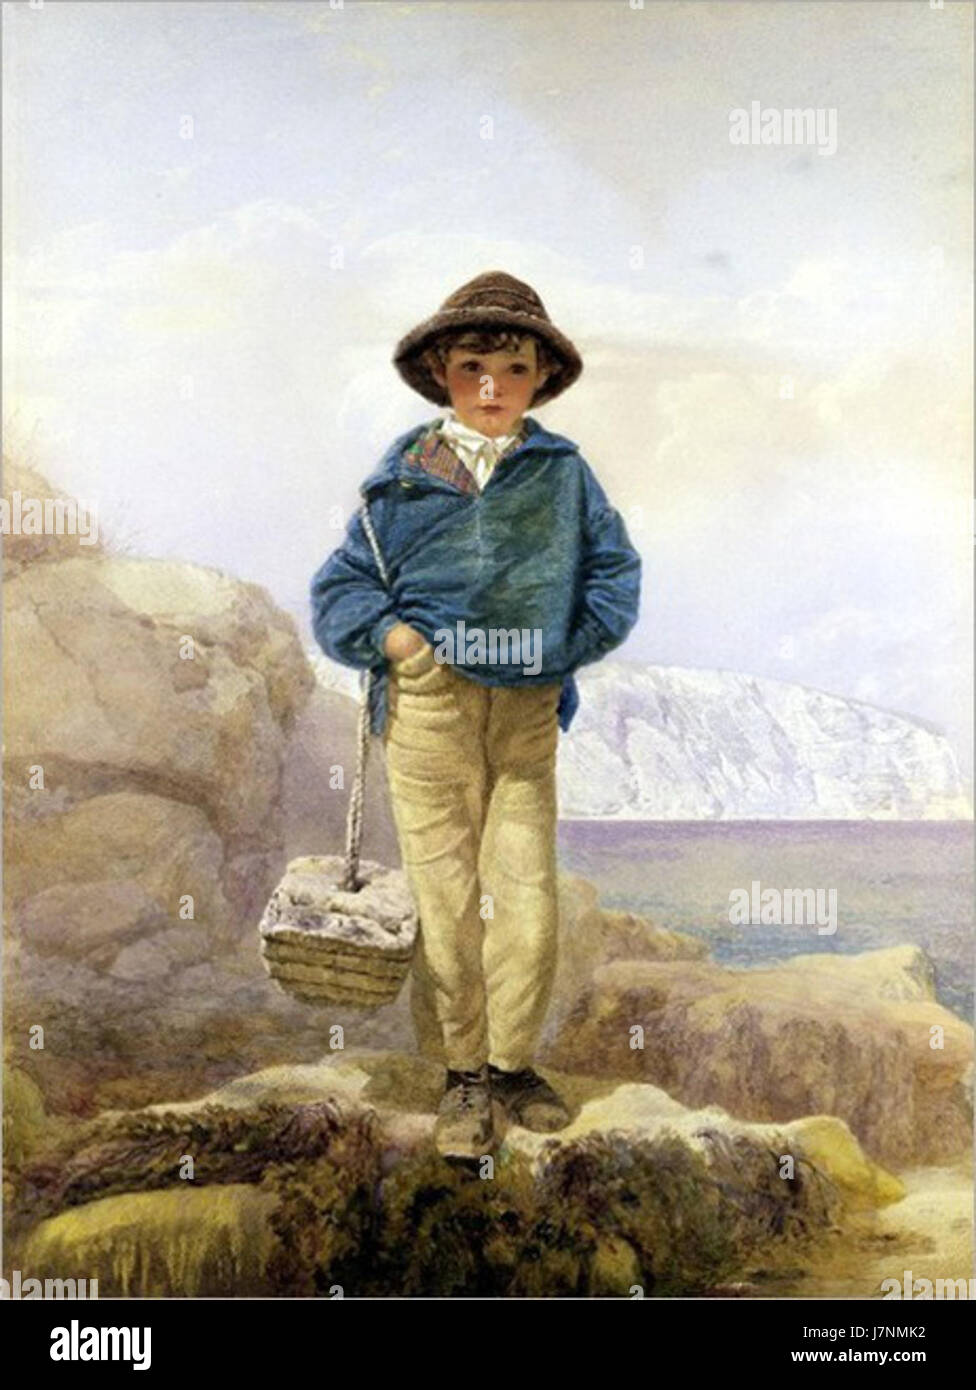 A Fisher Boy by Alfred Downing Fripp - Stock Image